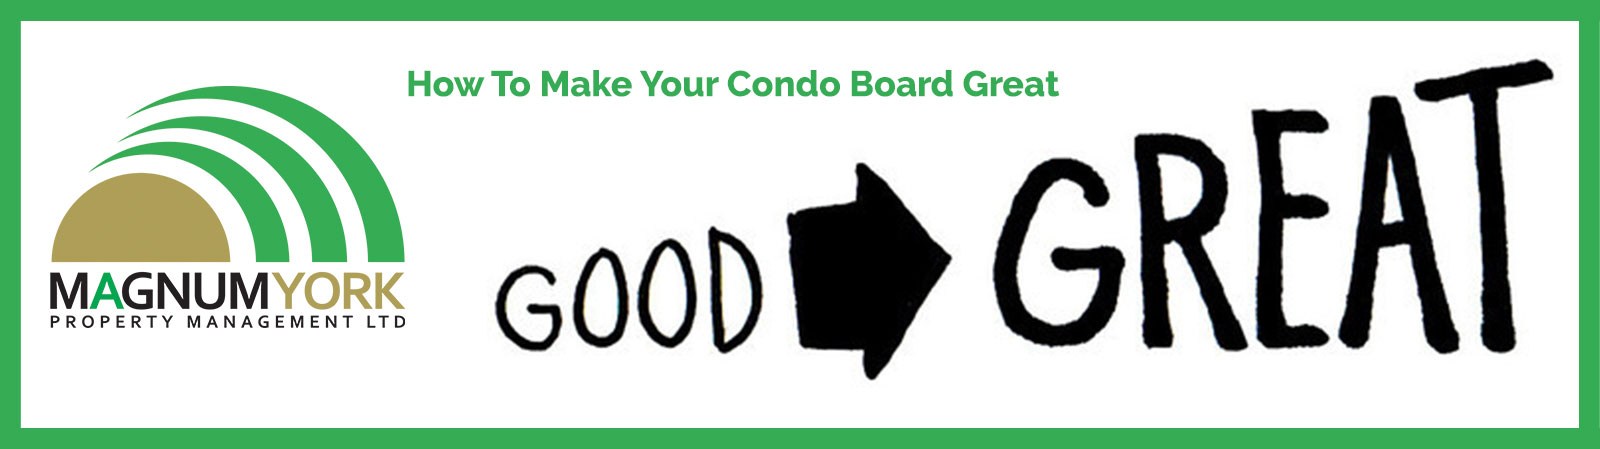 how to make your condo board great again condominium